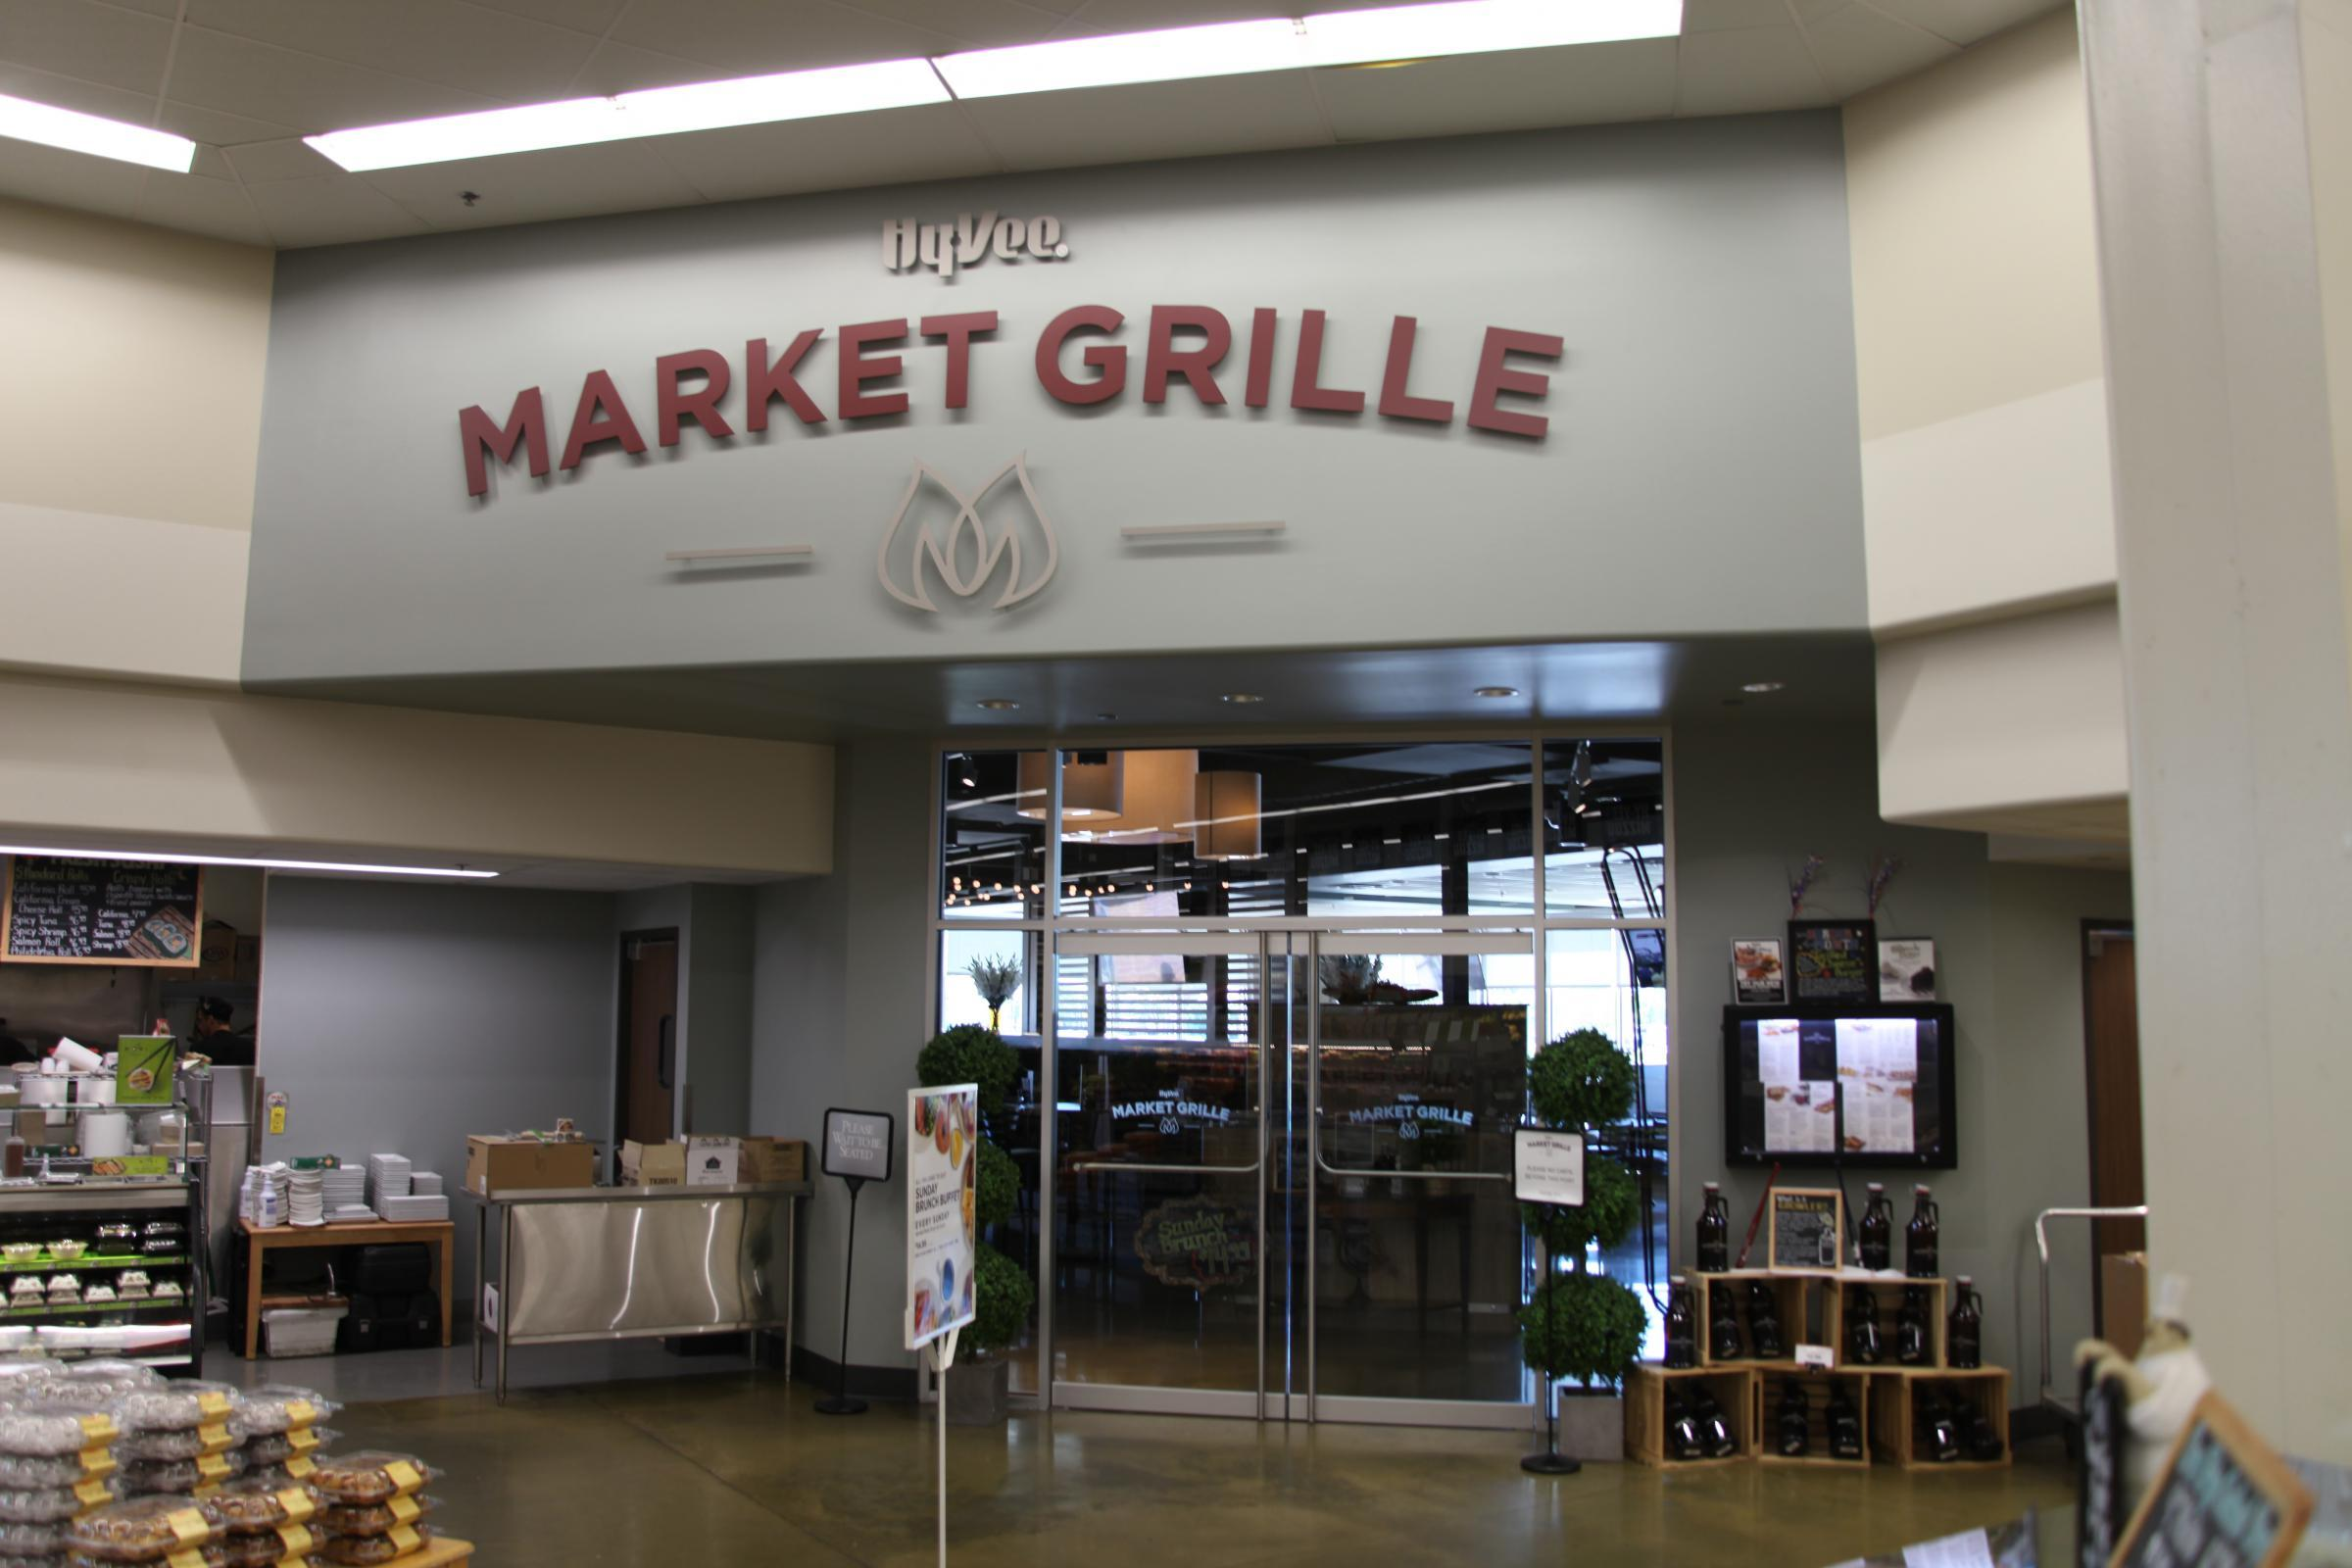 Hy vee market grille coupons